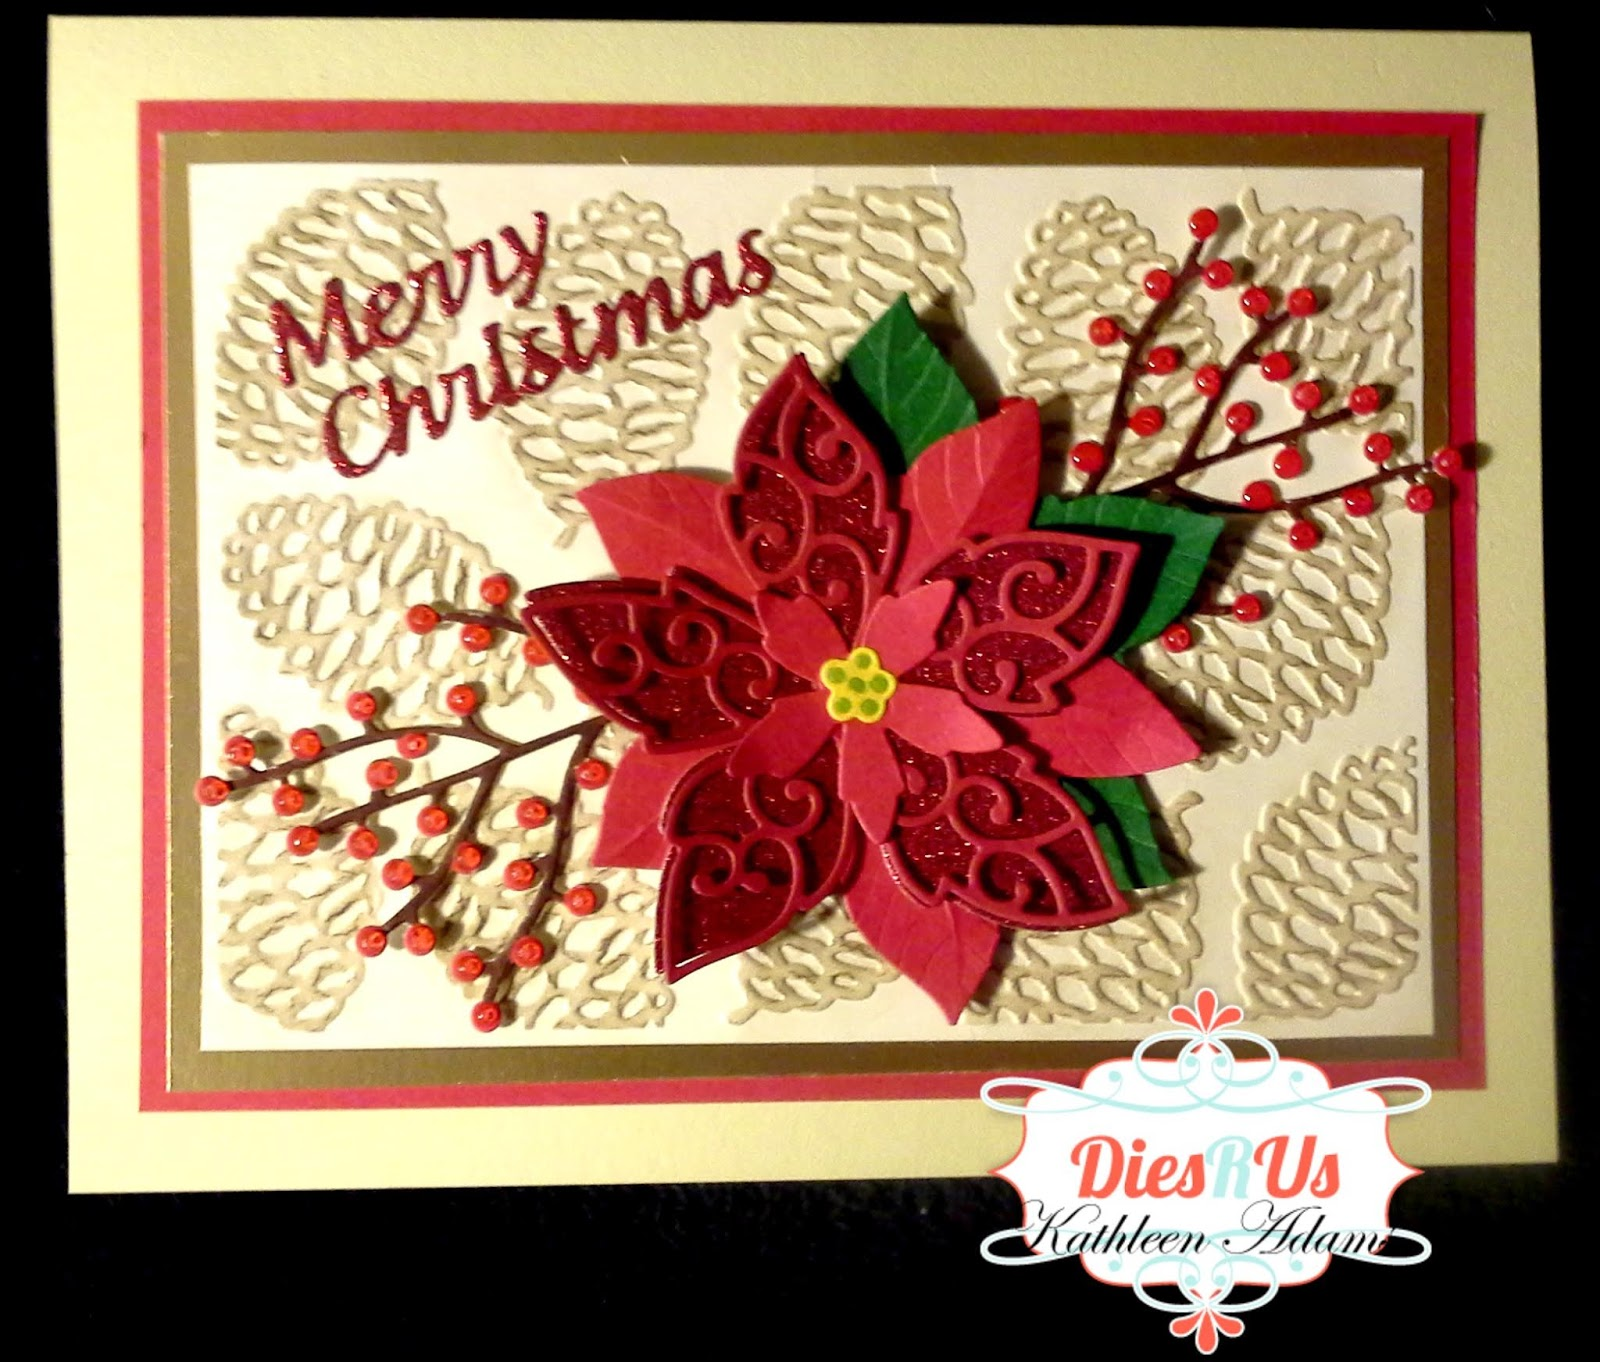 Dies R Us: A Beautiful but easy to make Christmas Card